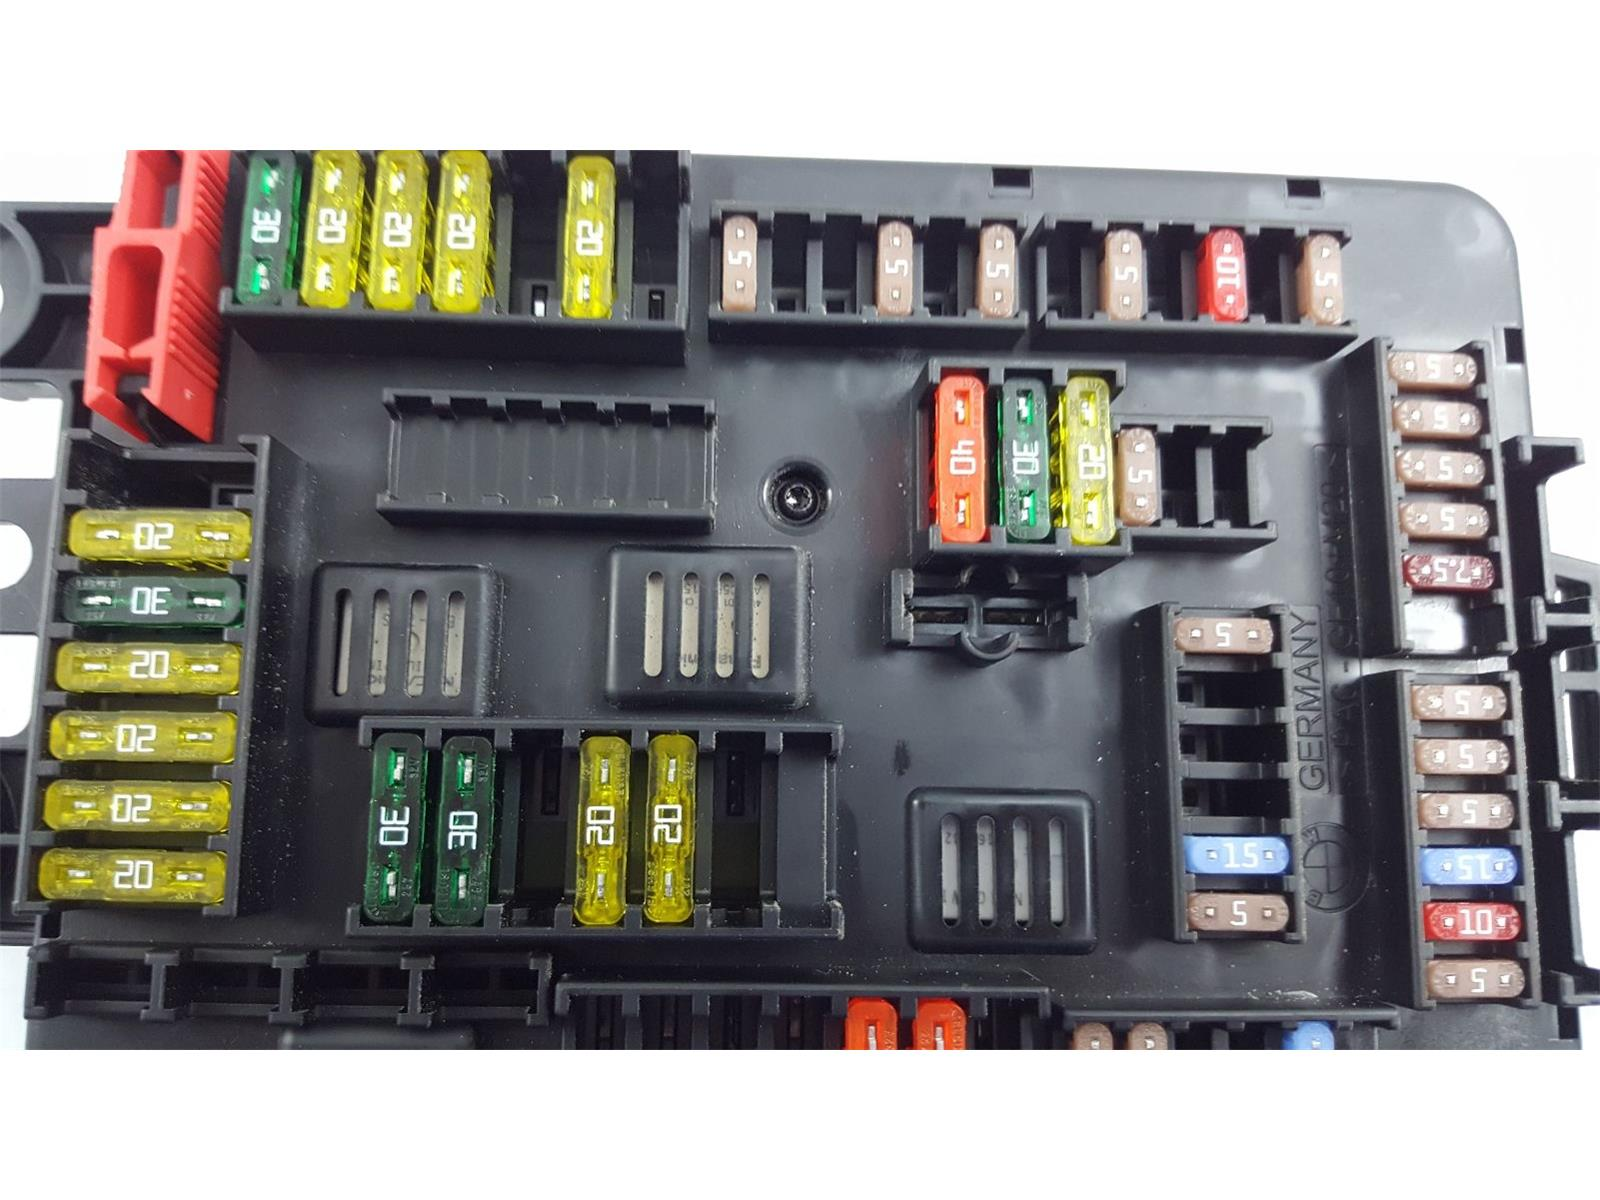 Bmw 3 Series 2012 To 2015 Fuse Box Diesel Manual For Sale From German 2014 F31 320d 9337884 01